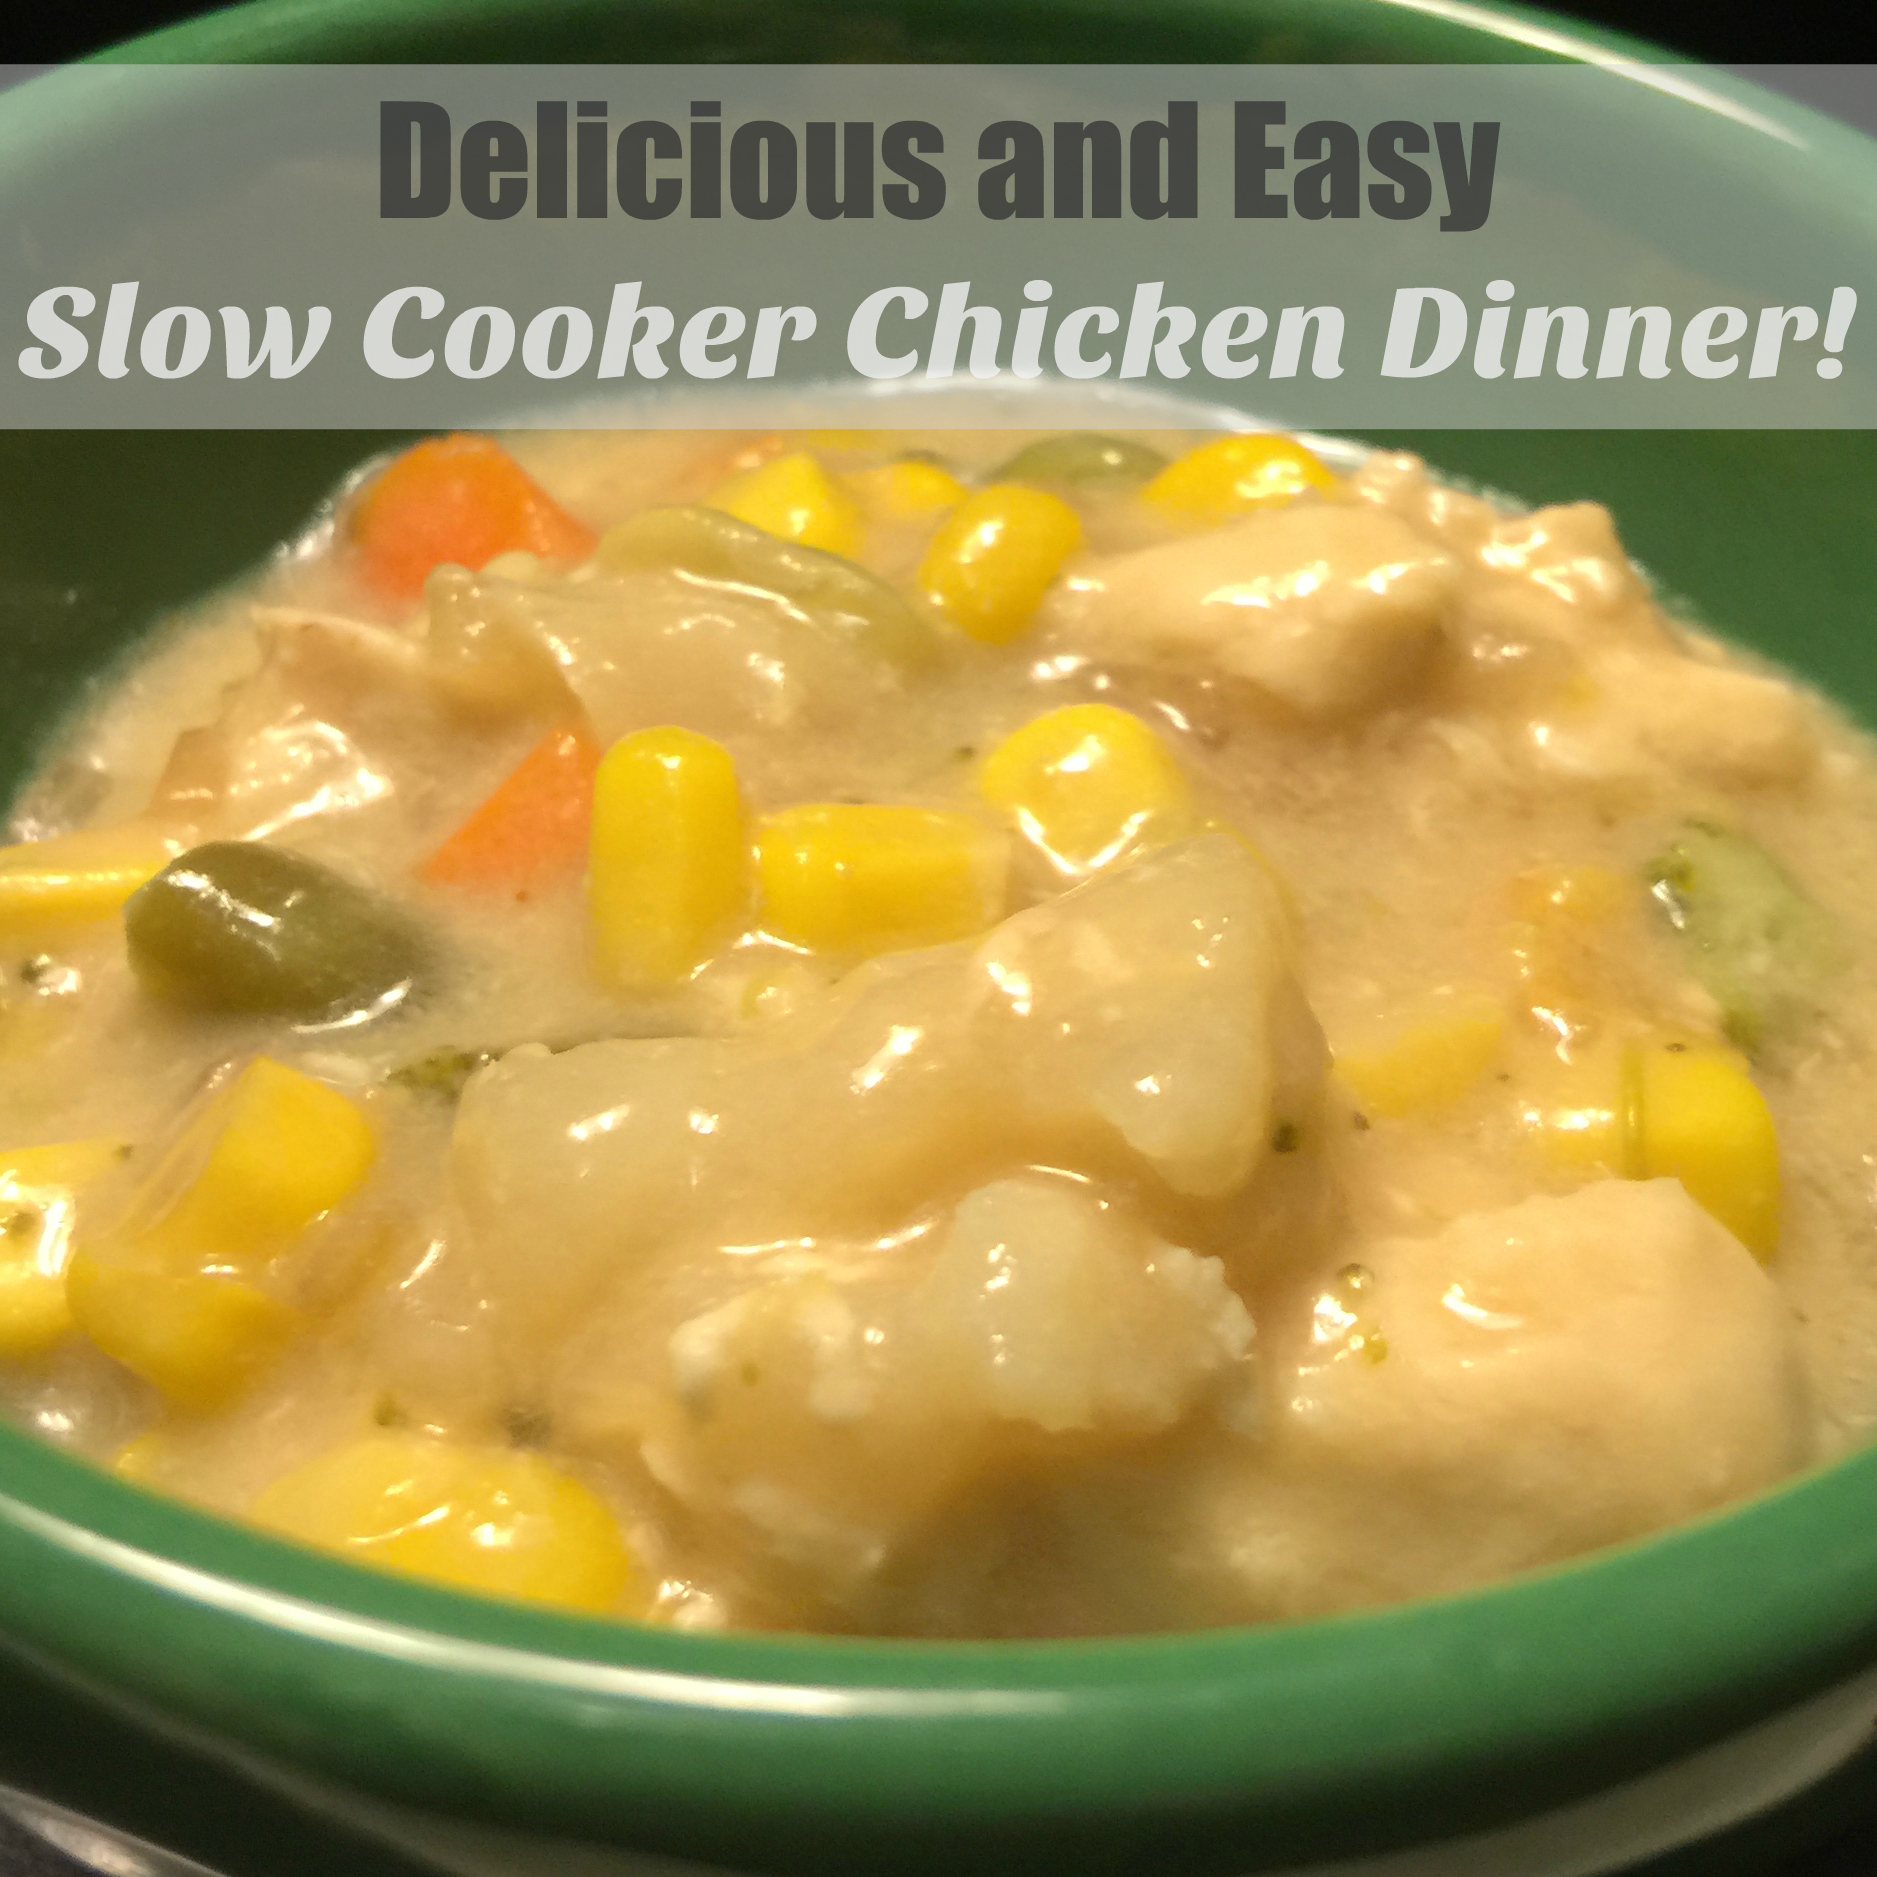 Delicious and Easy Slow Cooker Chicken Dinner @NinjaKitchen